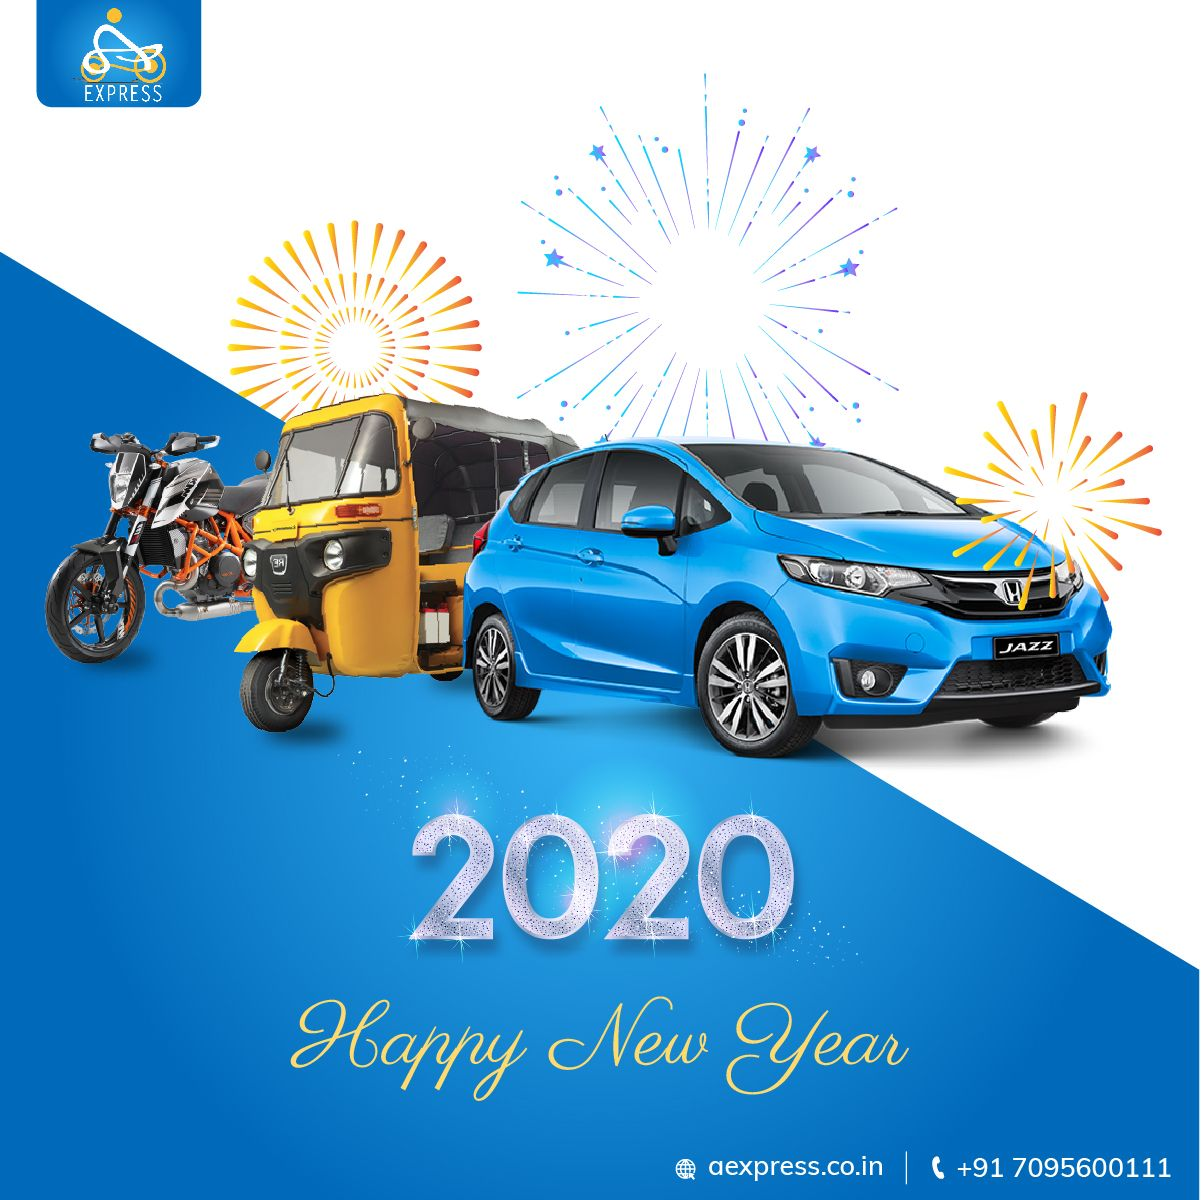 Buy and Sell Pre owned vehicles in 2020 Cars for sale